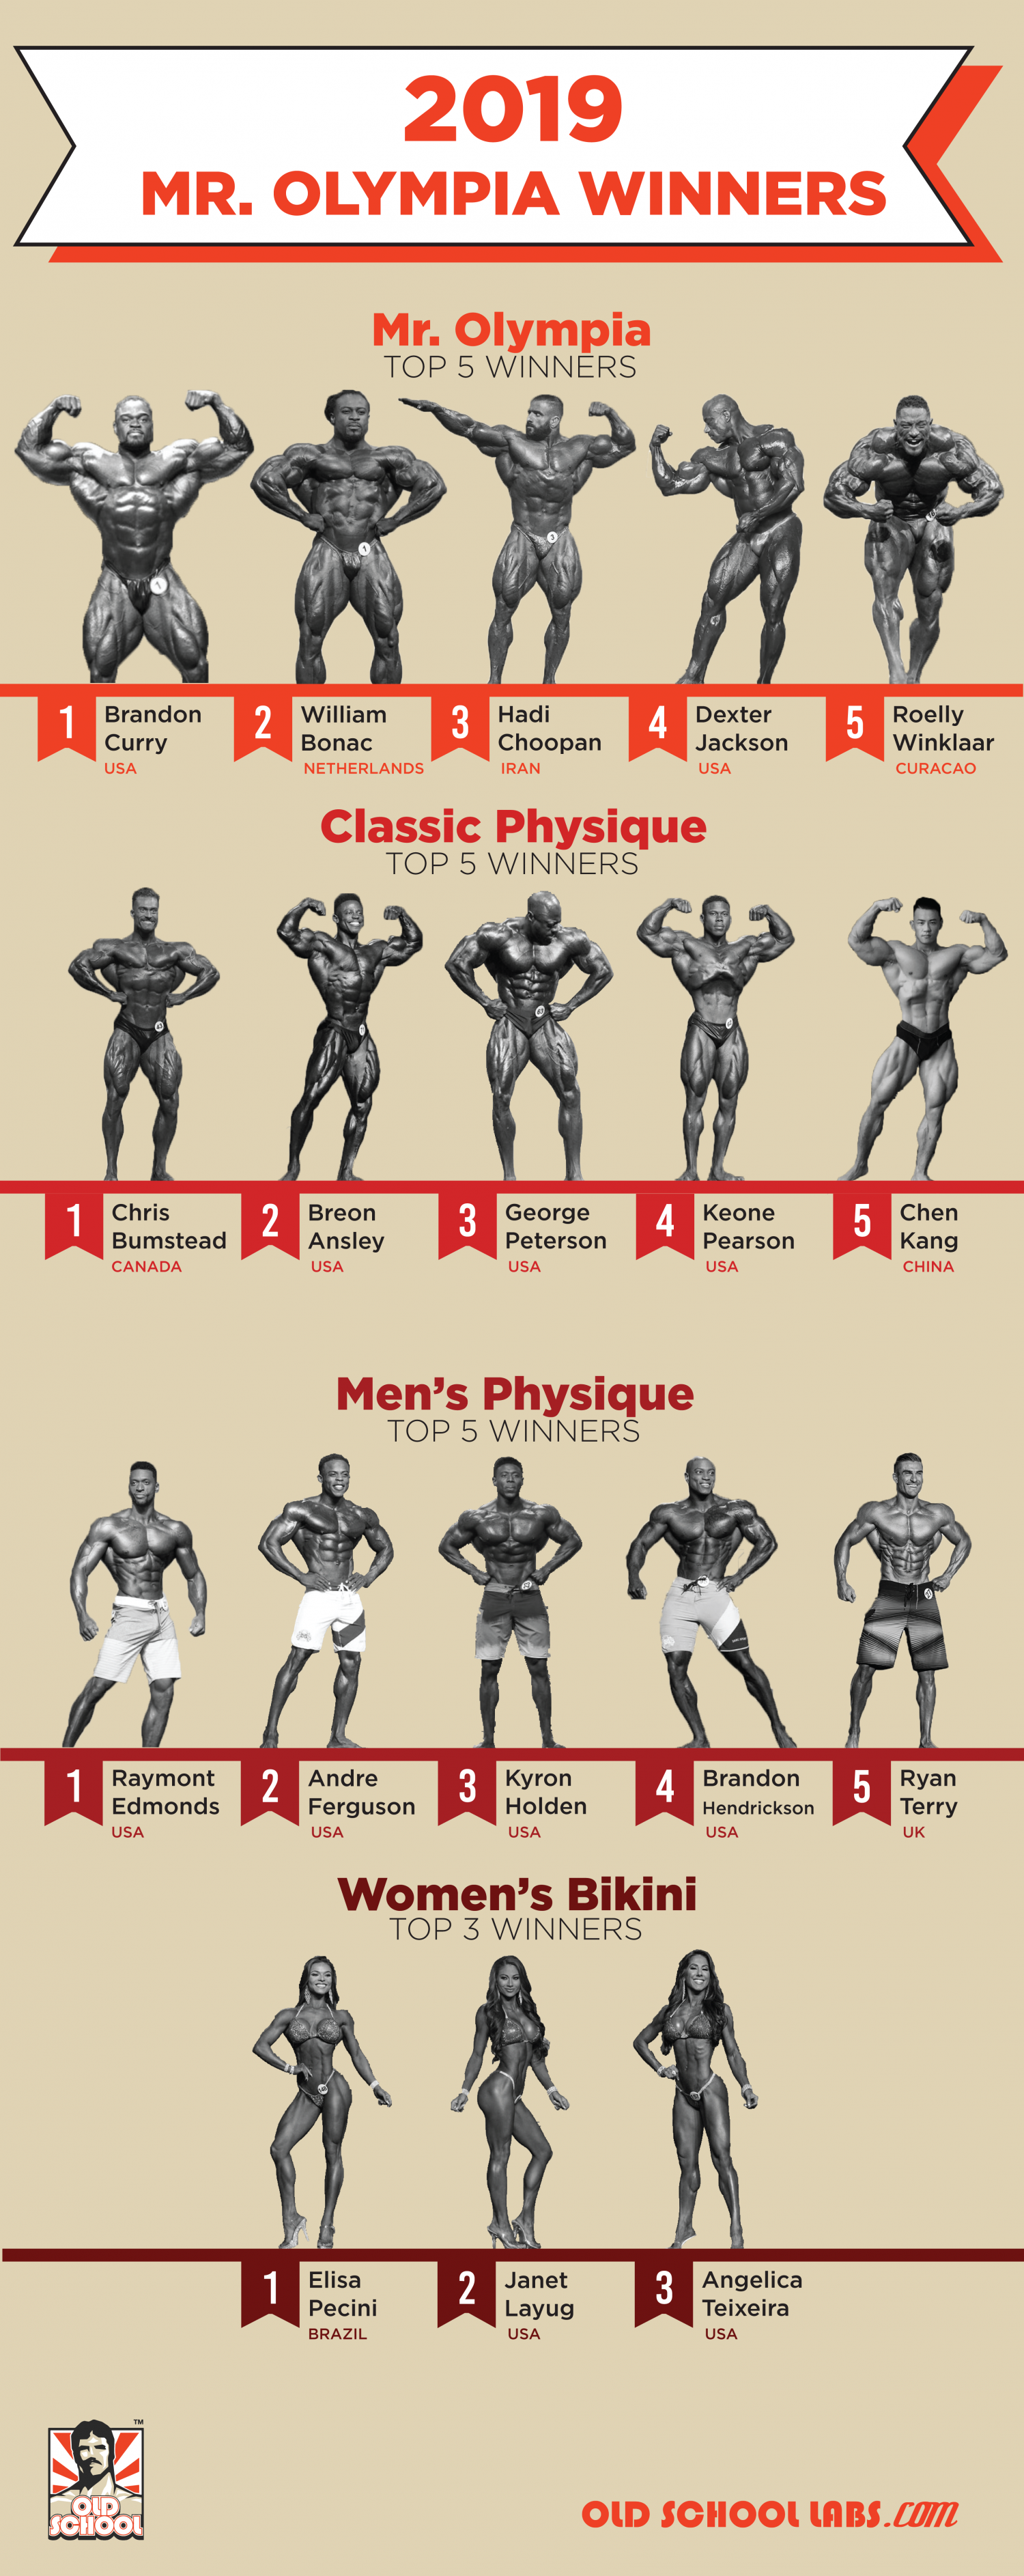 Mr. Olympia 2019 Winners Infographic Infographic